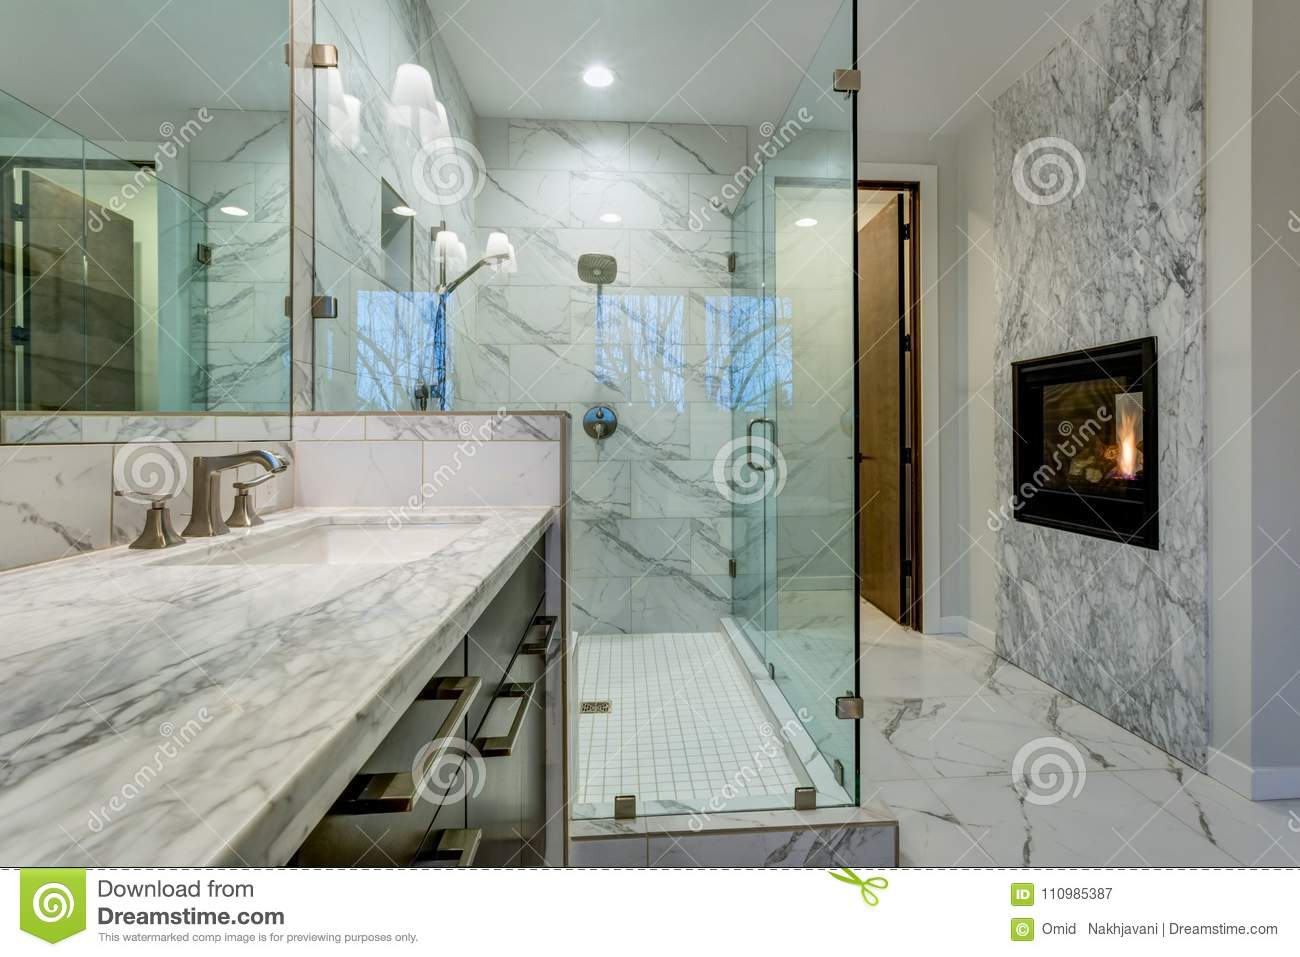 Incredible Master Bathroom With Fireplace, Carrara Marble Tile Surround,  Modern Glass Walk In Shower, Espresso Dual Vanity Cabinet And A  Freestanding ...